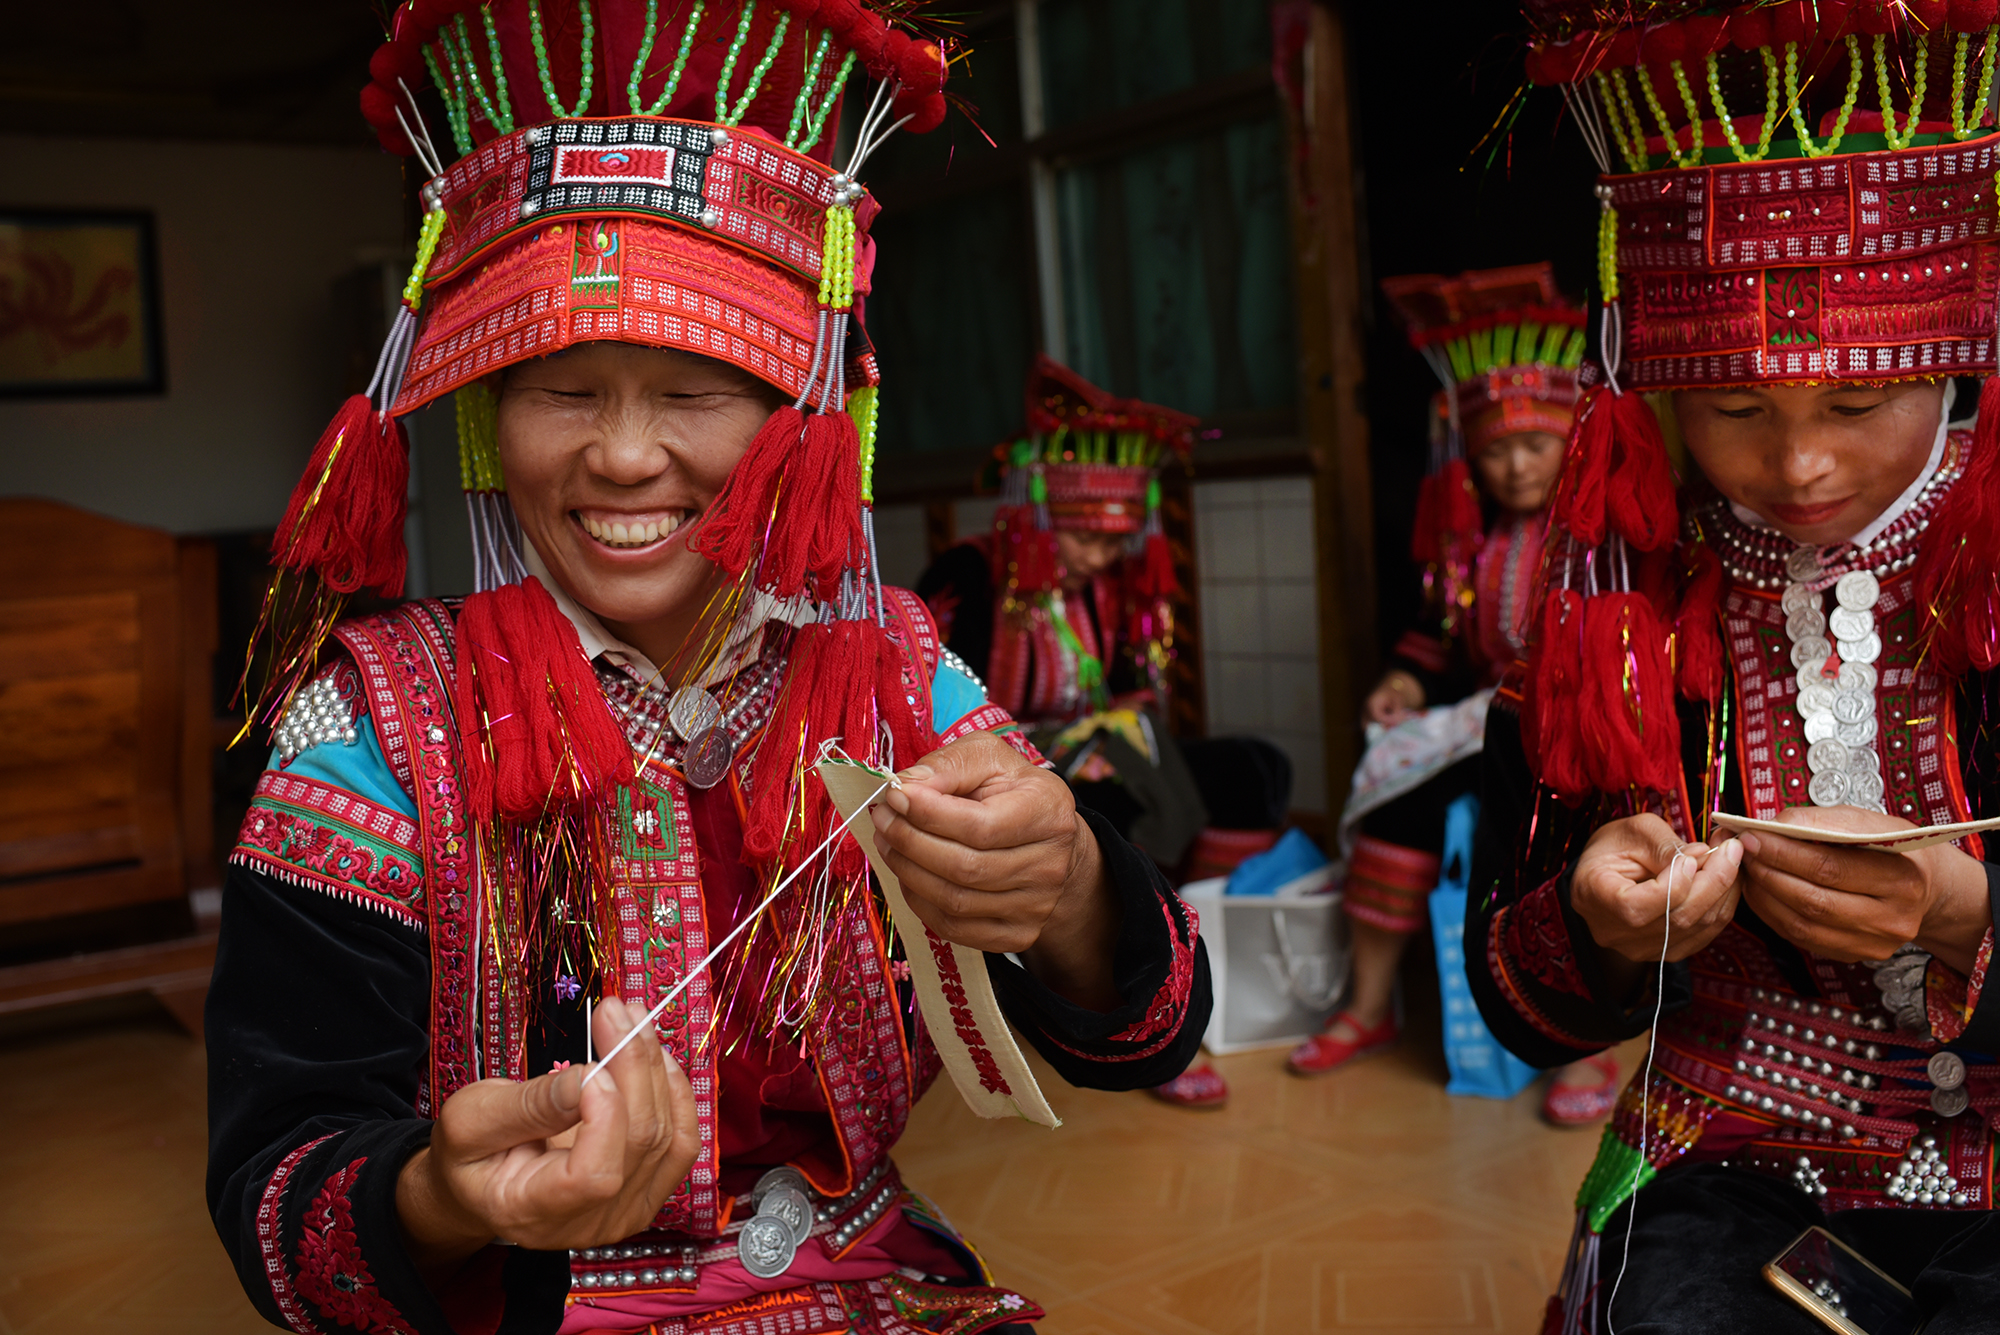 Embroidery, Yi costume design and dance, Pengzu village